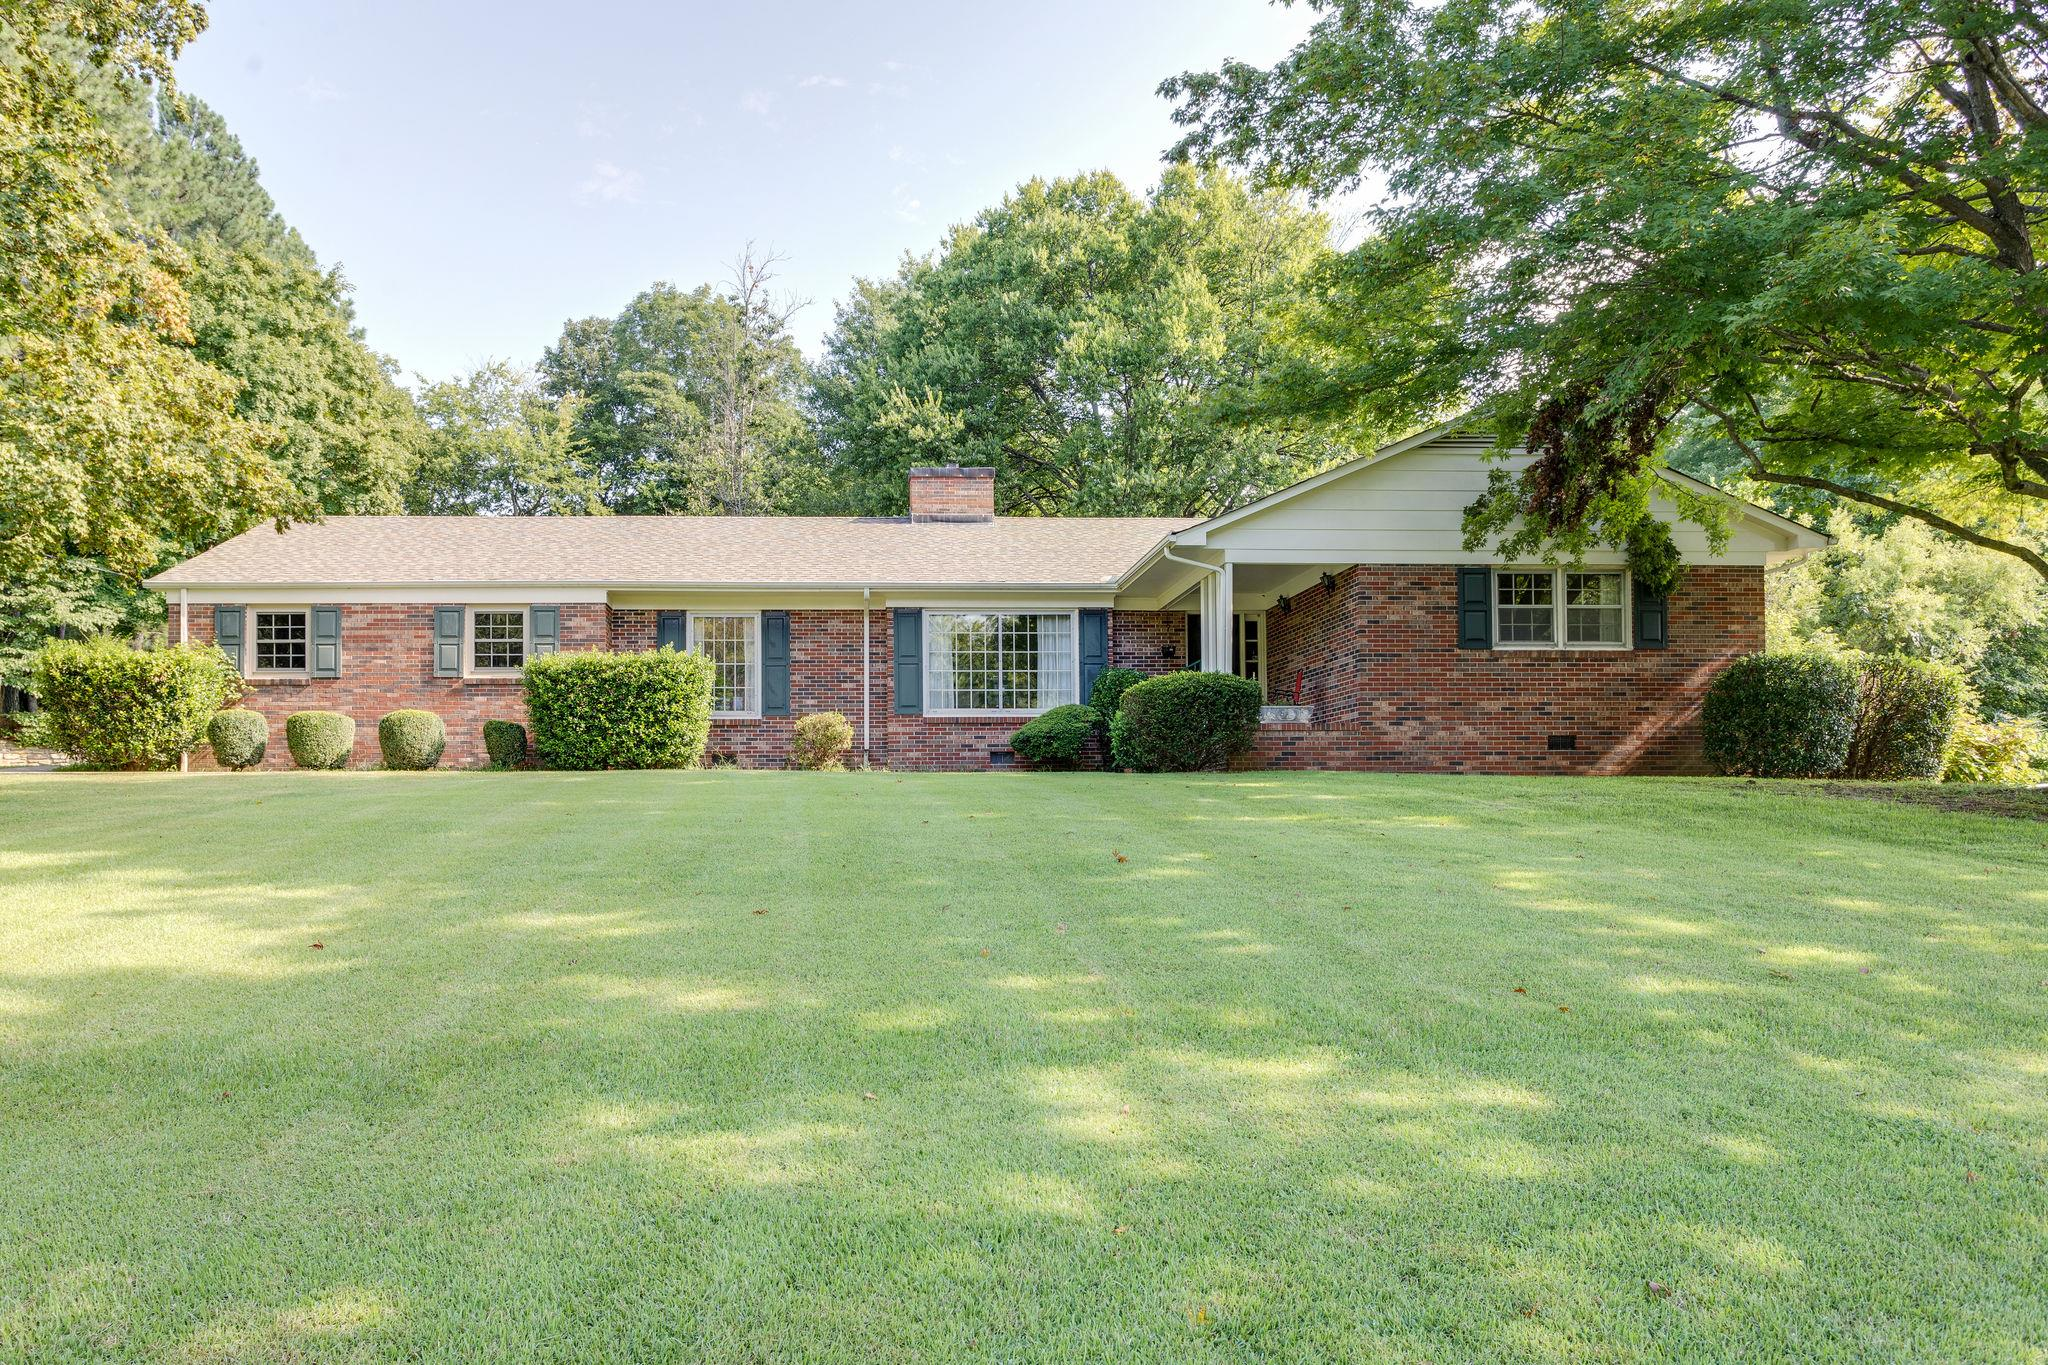 1840 Lakehill Cir, Lewisburg, TN 37091 - Lewisburg, TN real estate listing